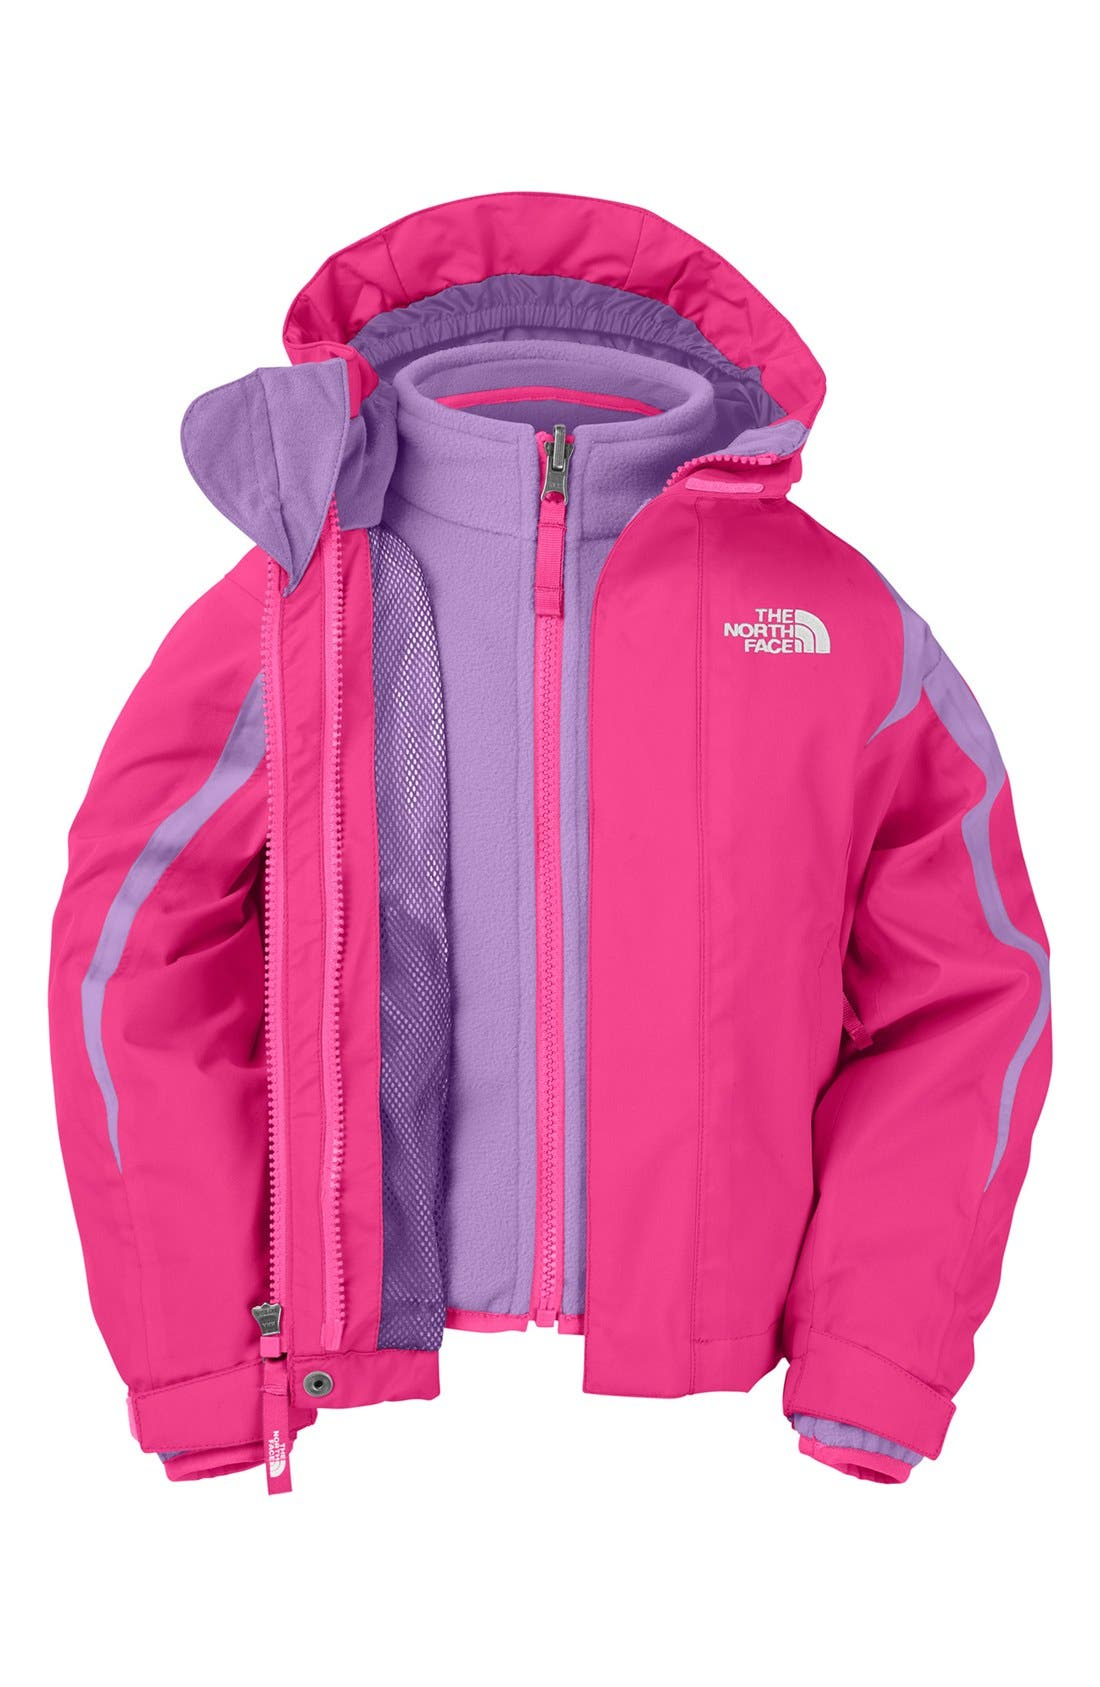 Alternate Image 1 Selected - The North Face 'Mountain View TriClimate®' 3-in-1 Jacket (Toddler Girls)